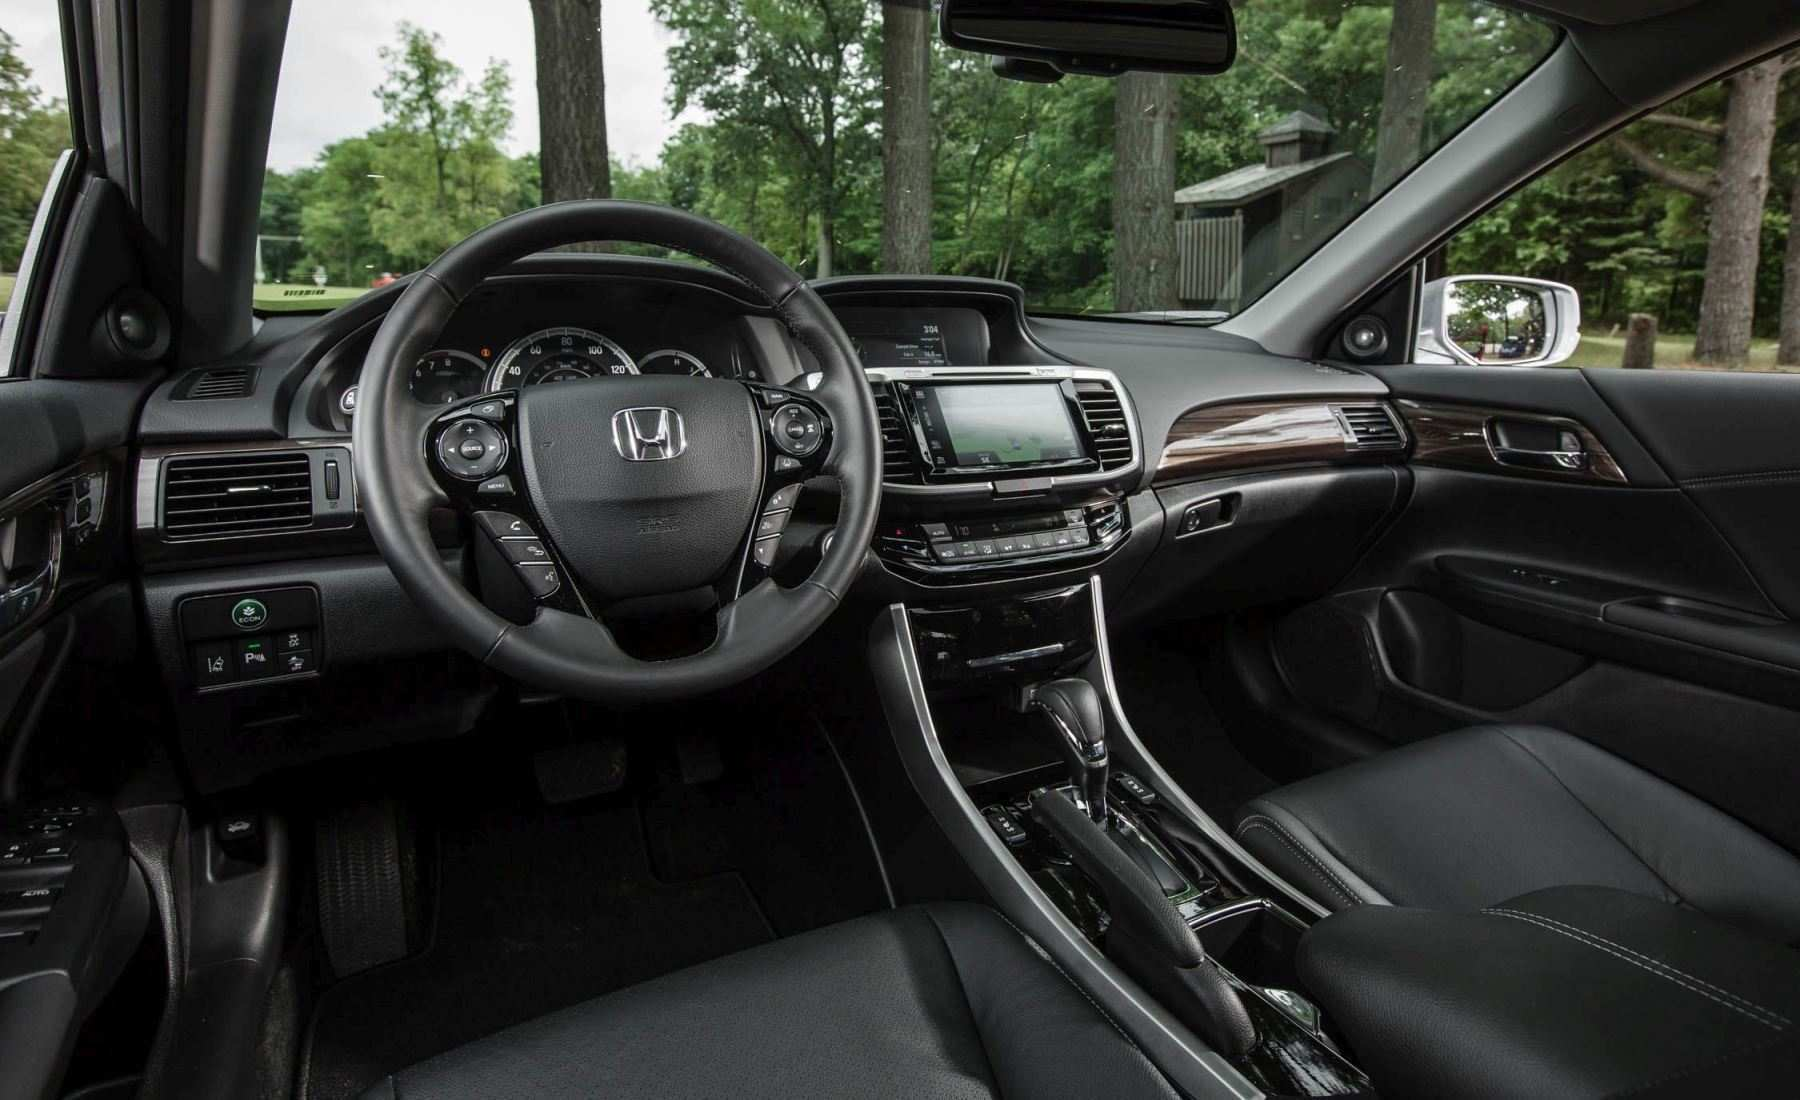 74 All New 2020 Honda Accord Interior First Drive